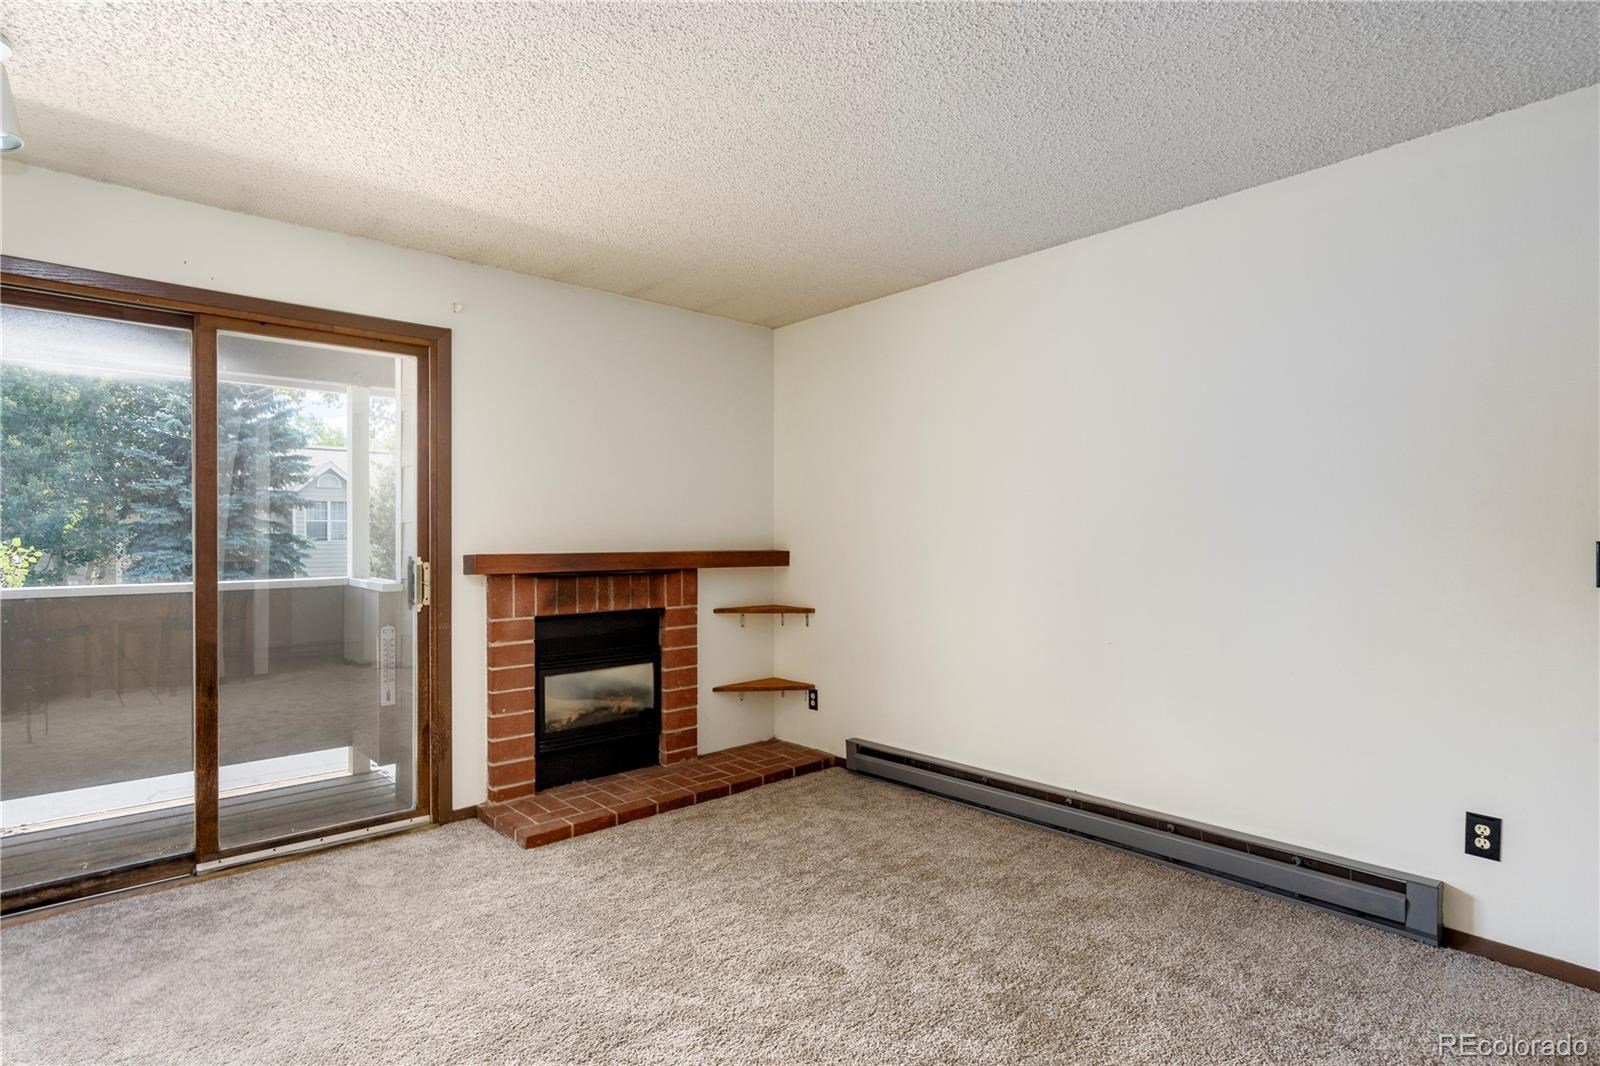 MLS# 5203269 - 3 - 1320 Athens Plaza #4, Steamboat Springs, CO 80487